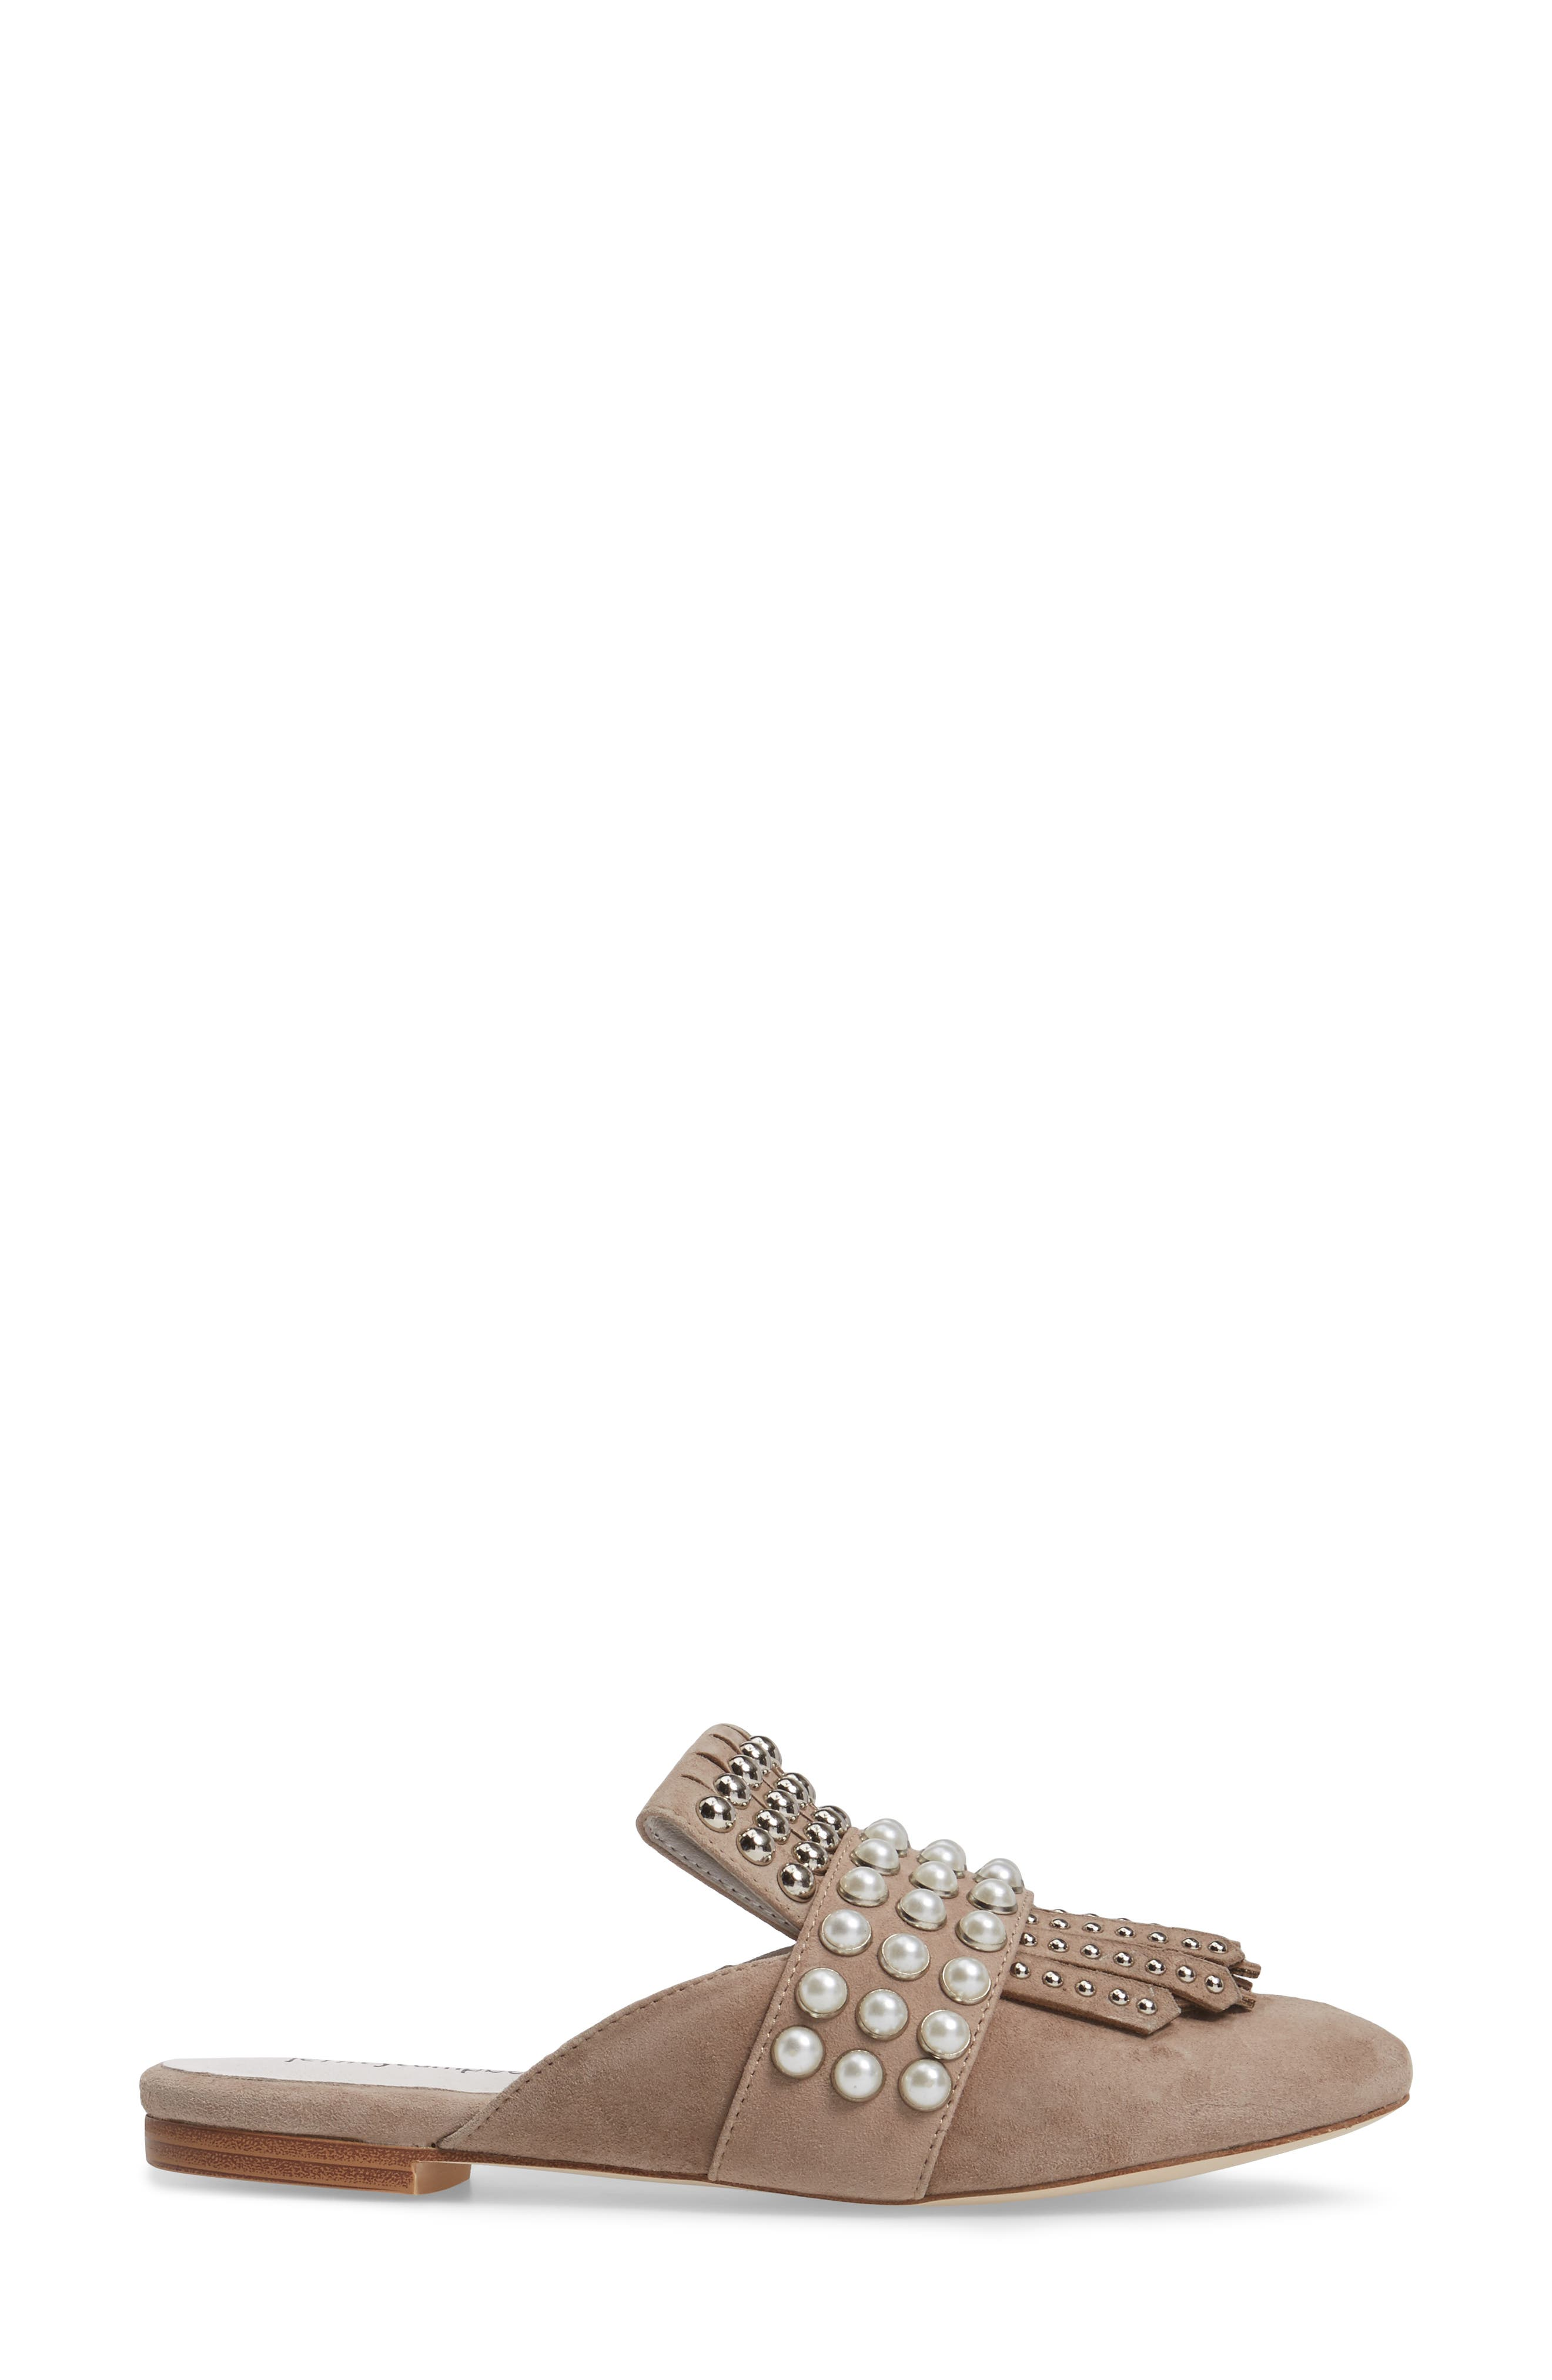 Ravis Embellished Loafer Mule,                             Alternate thumbnail 3, color,                             201